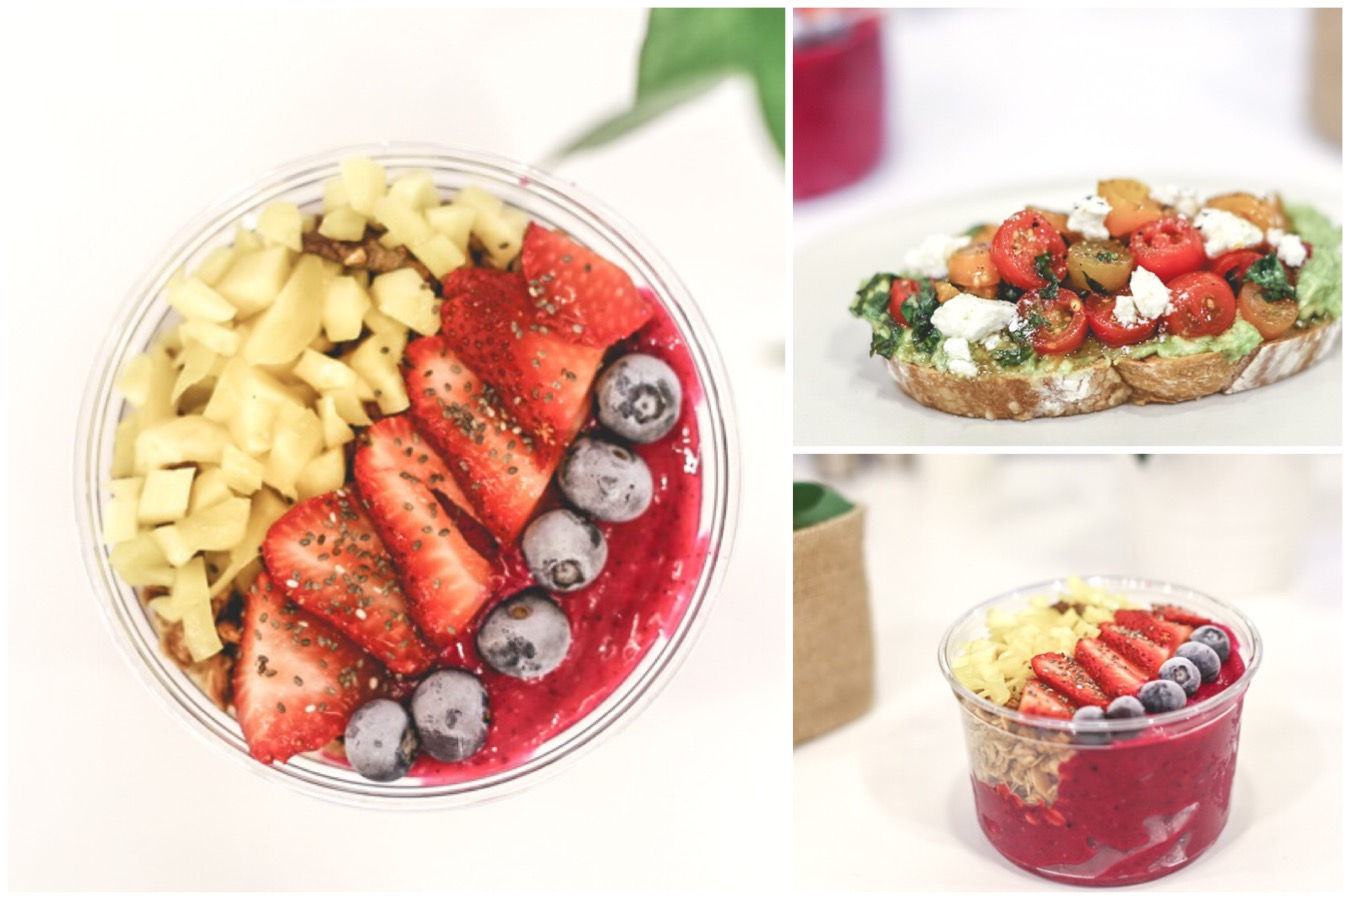 mo-ii - minimalist cafe with refreshing pitaya and acai bowls, at